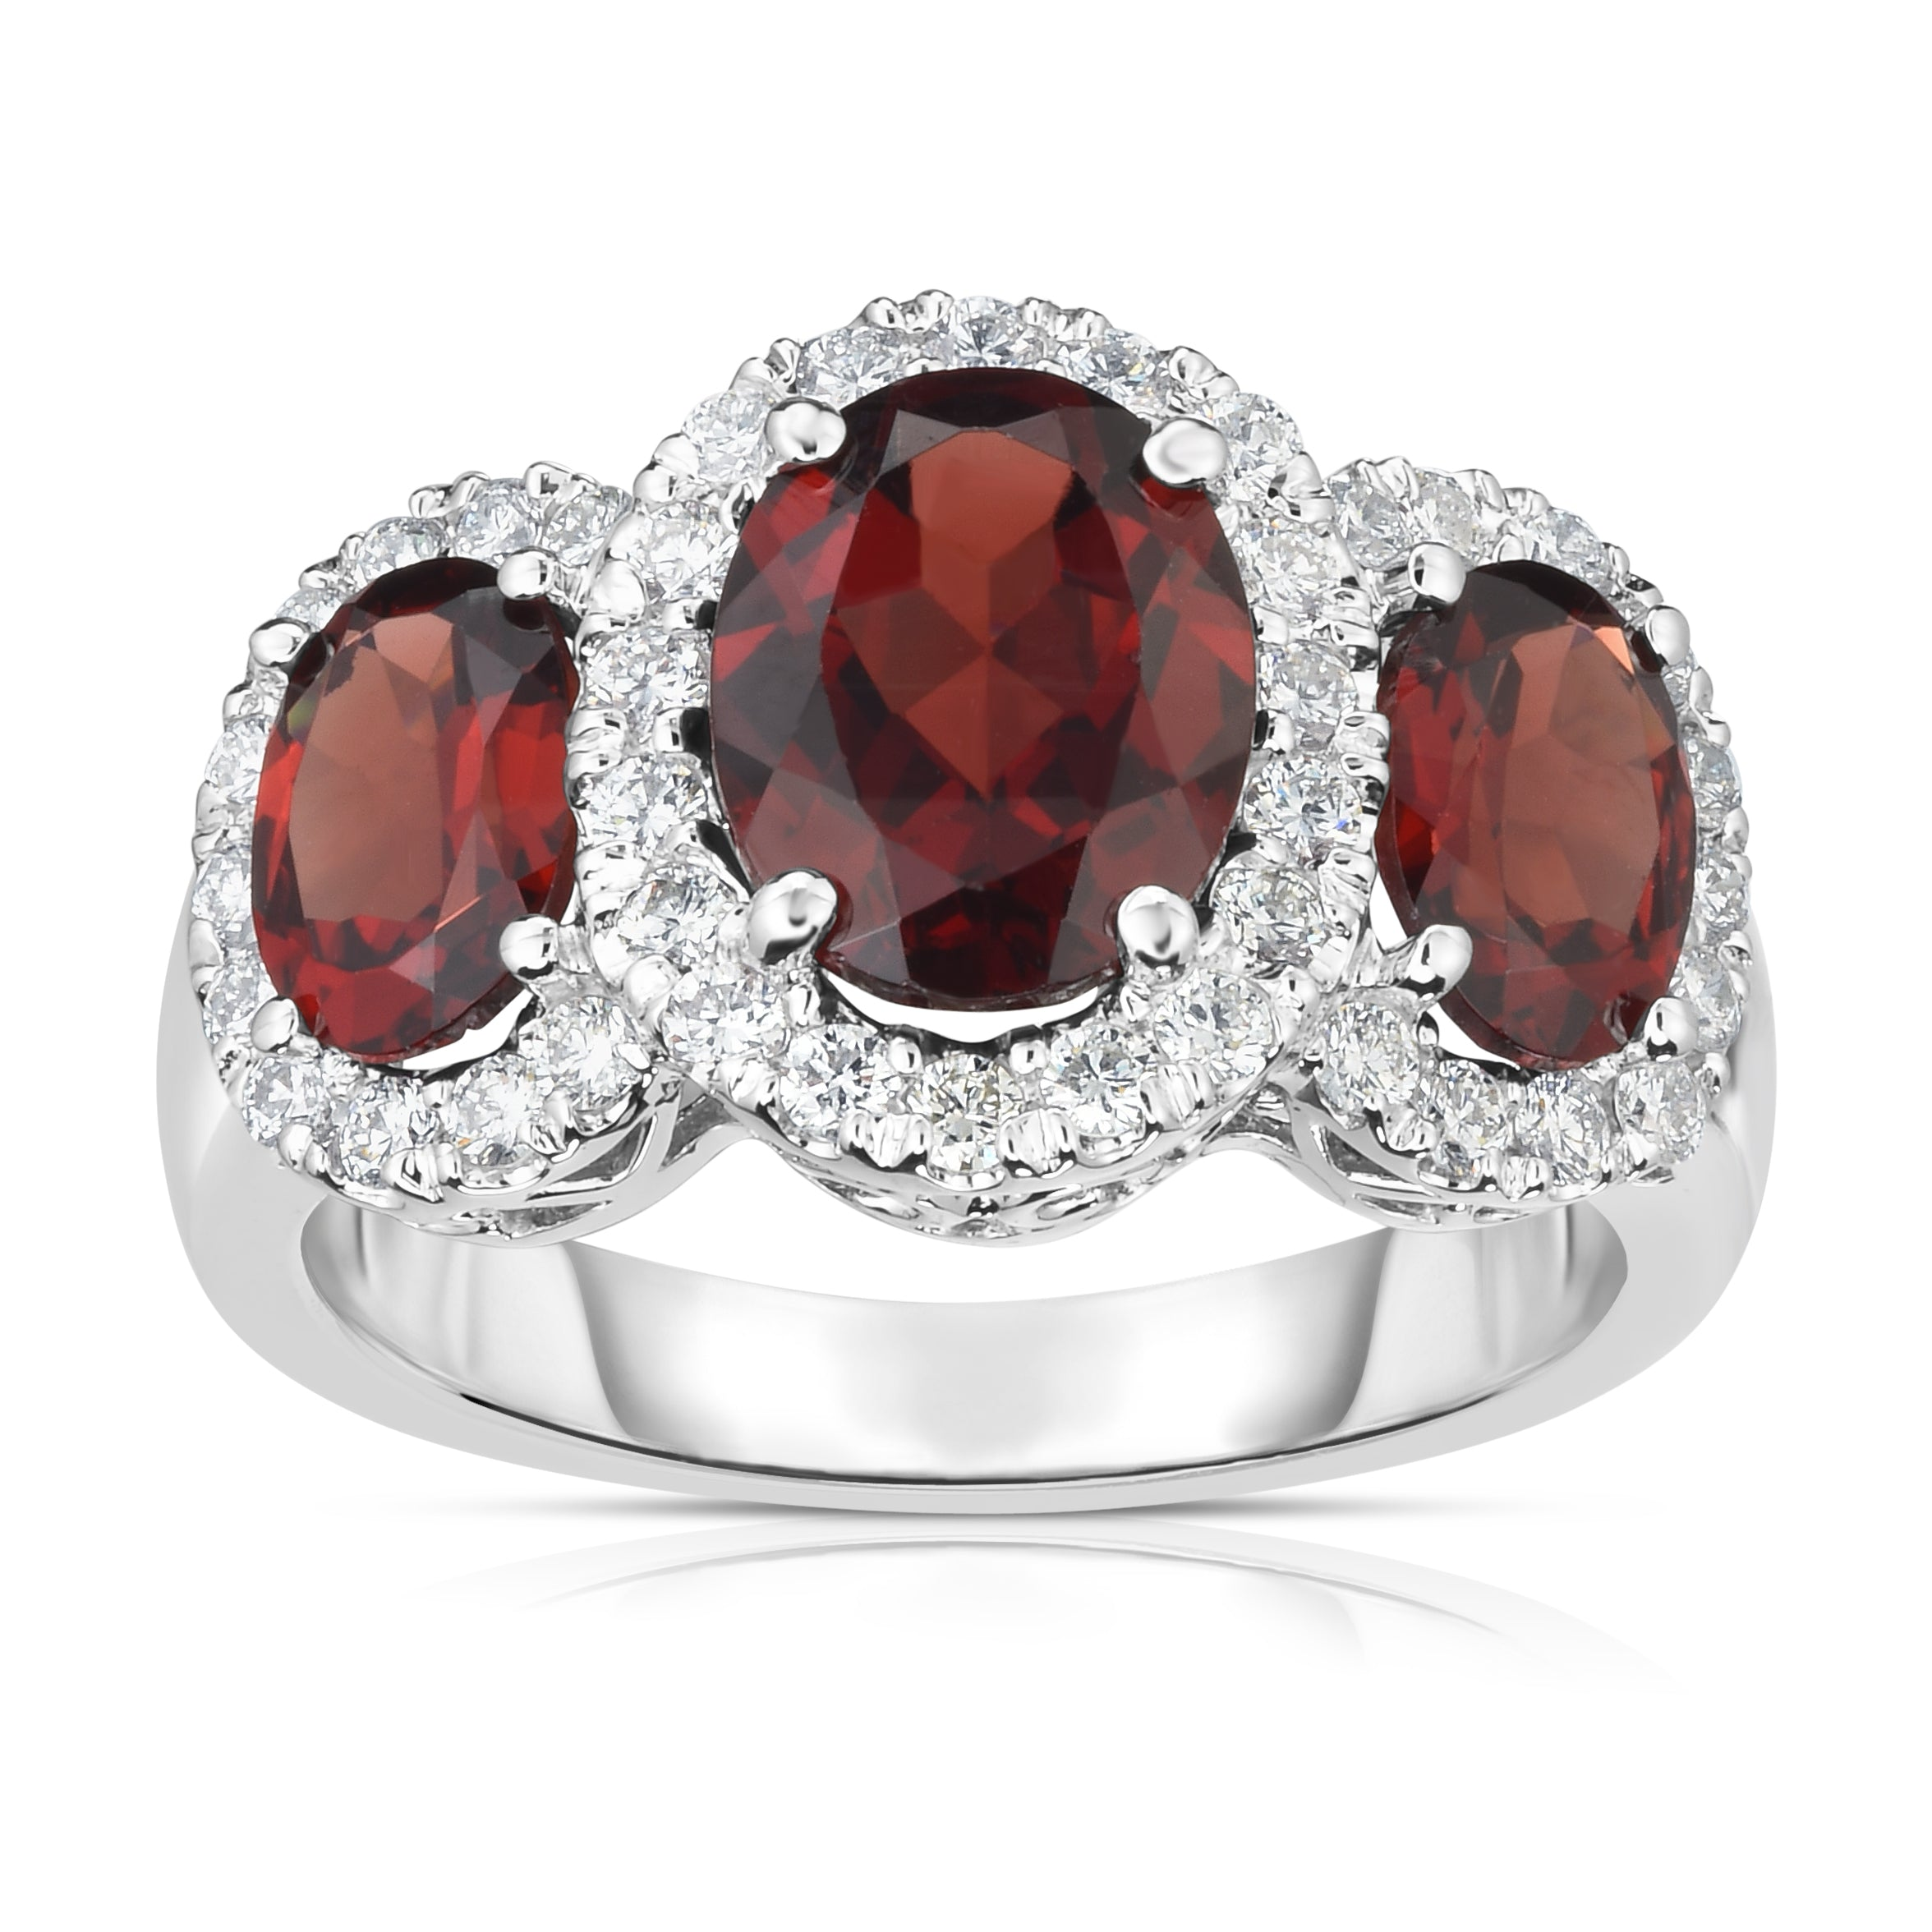 by pavilion shape ring diamond red a dome ruby central surrounded graff featuring pear and teardrop bomb collections bombe rings